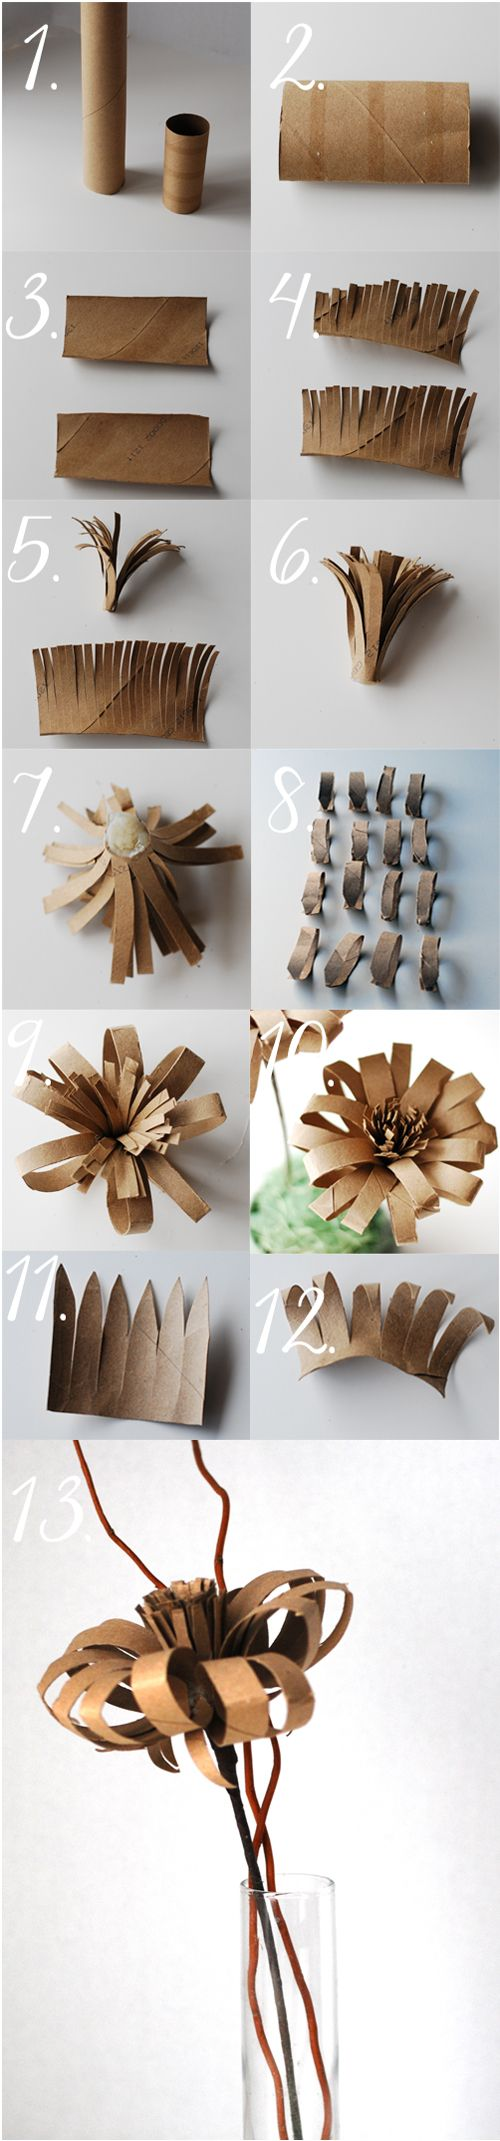 How To Diy Vintage Flower Bouquet From Tp Rolls Www Fabartdiy Com Like Us On Facebook Https Toilet Paper Crafts Toilet Paper Roll Art Rolled Paper Art